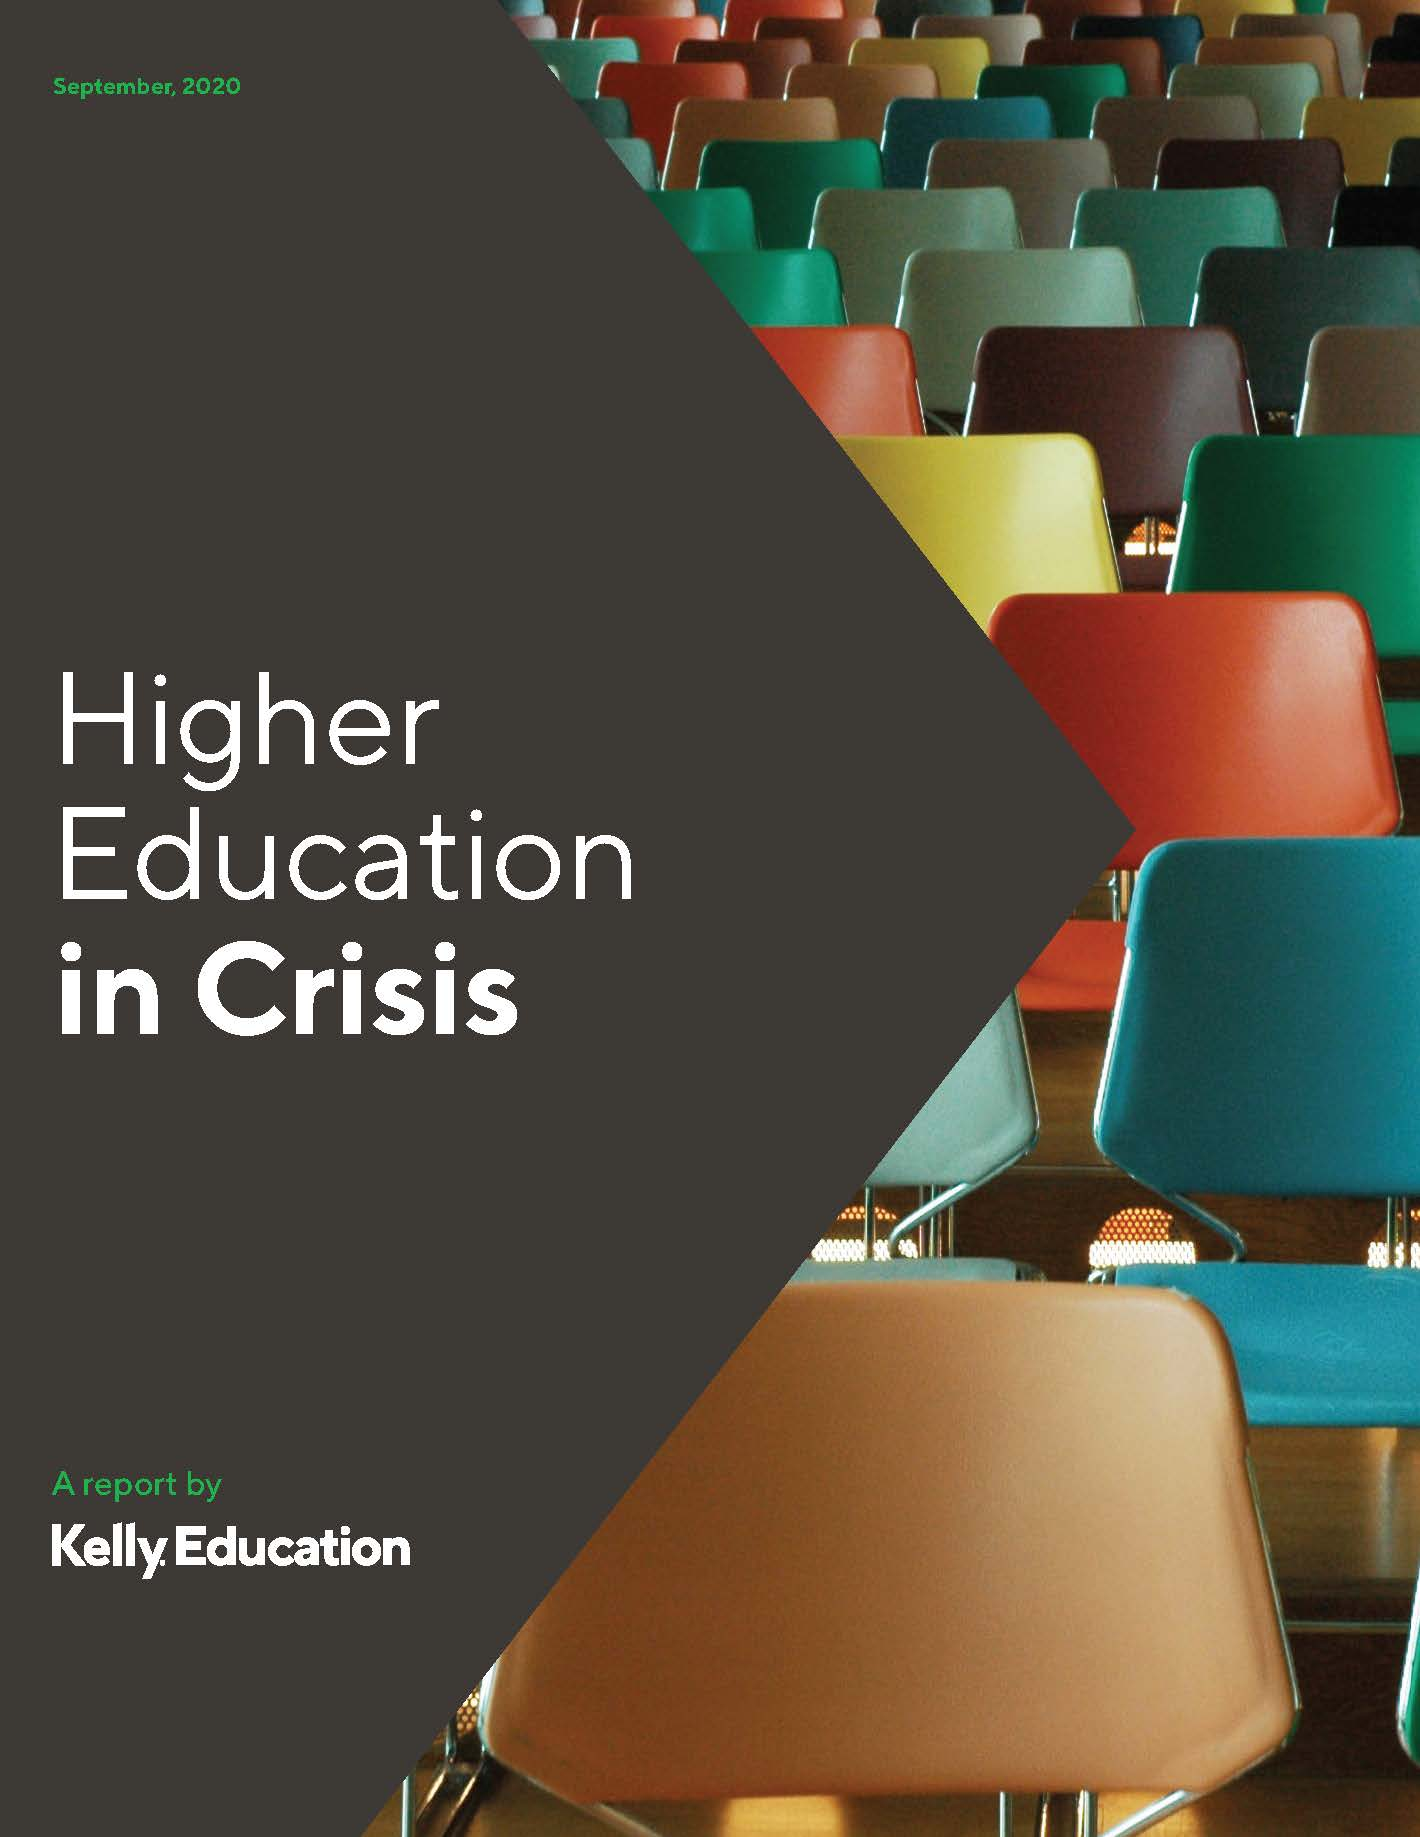 Higher Education in Crisis